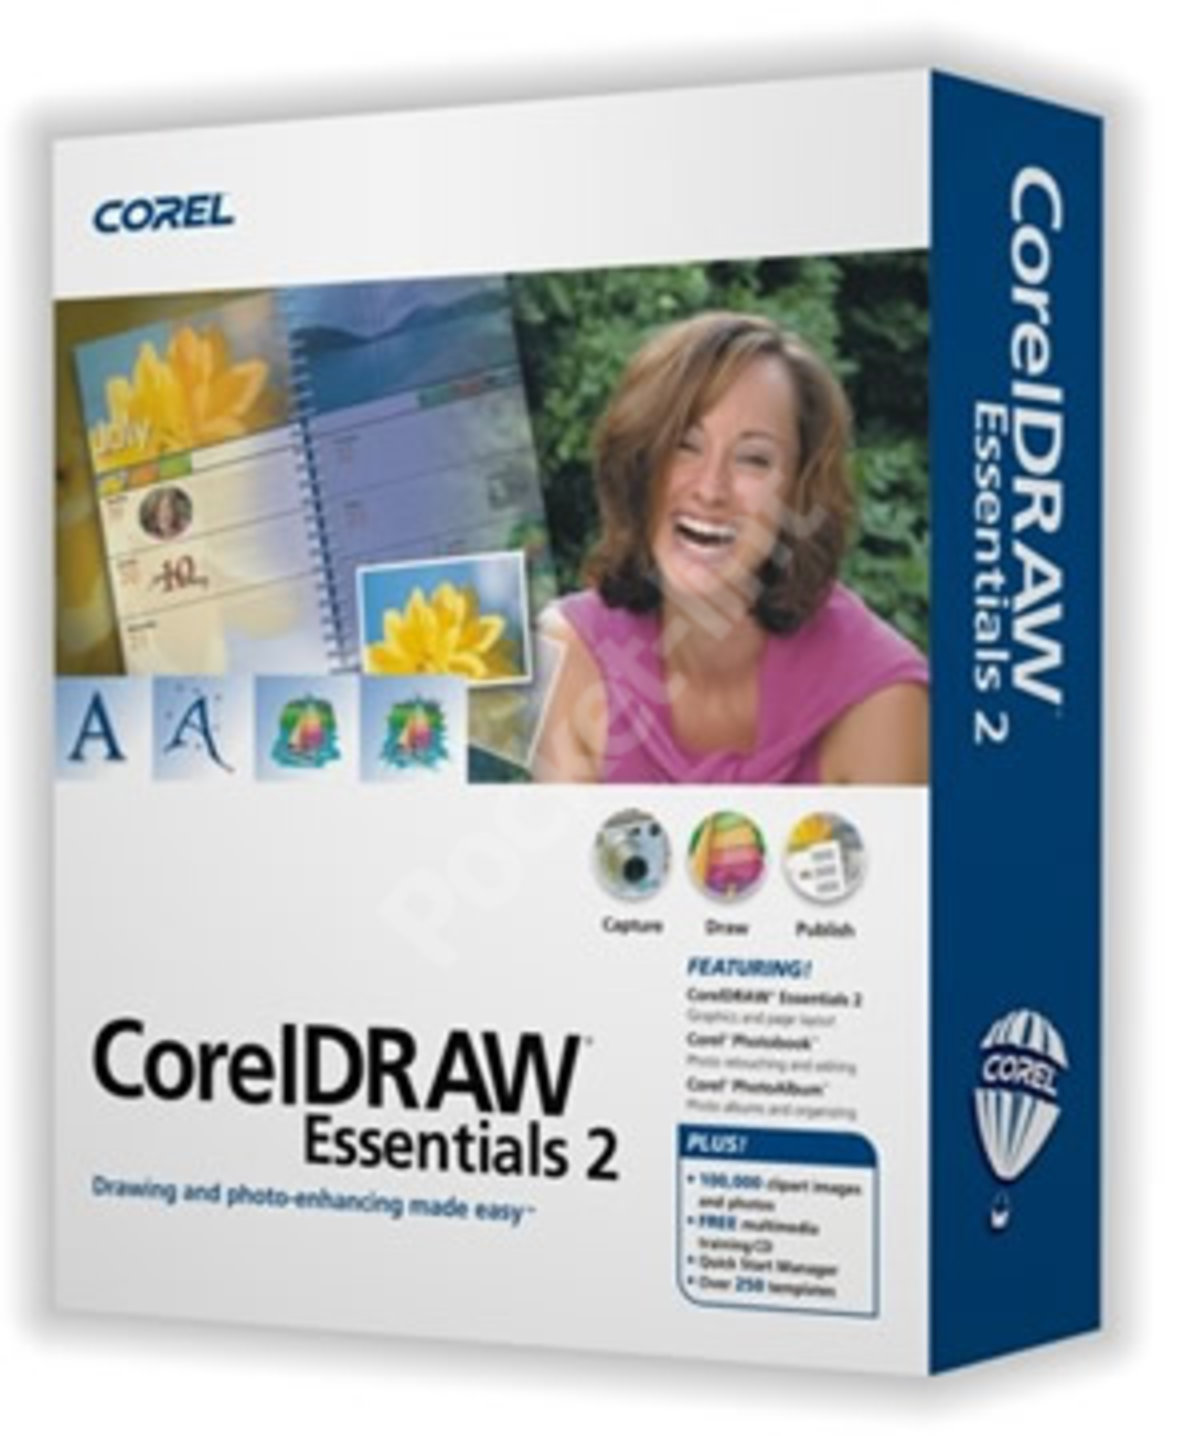 Corel DRAW Essentials 2